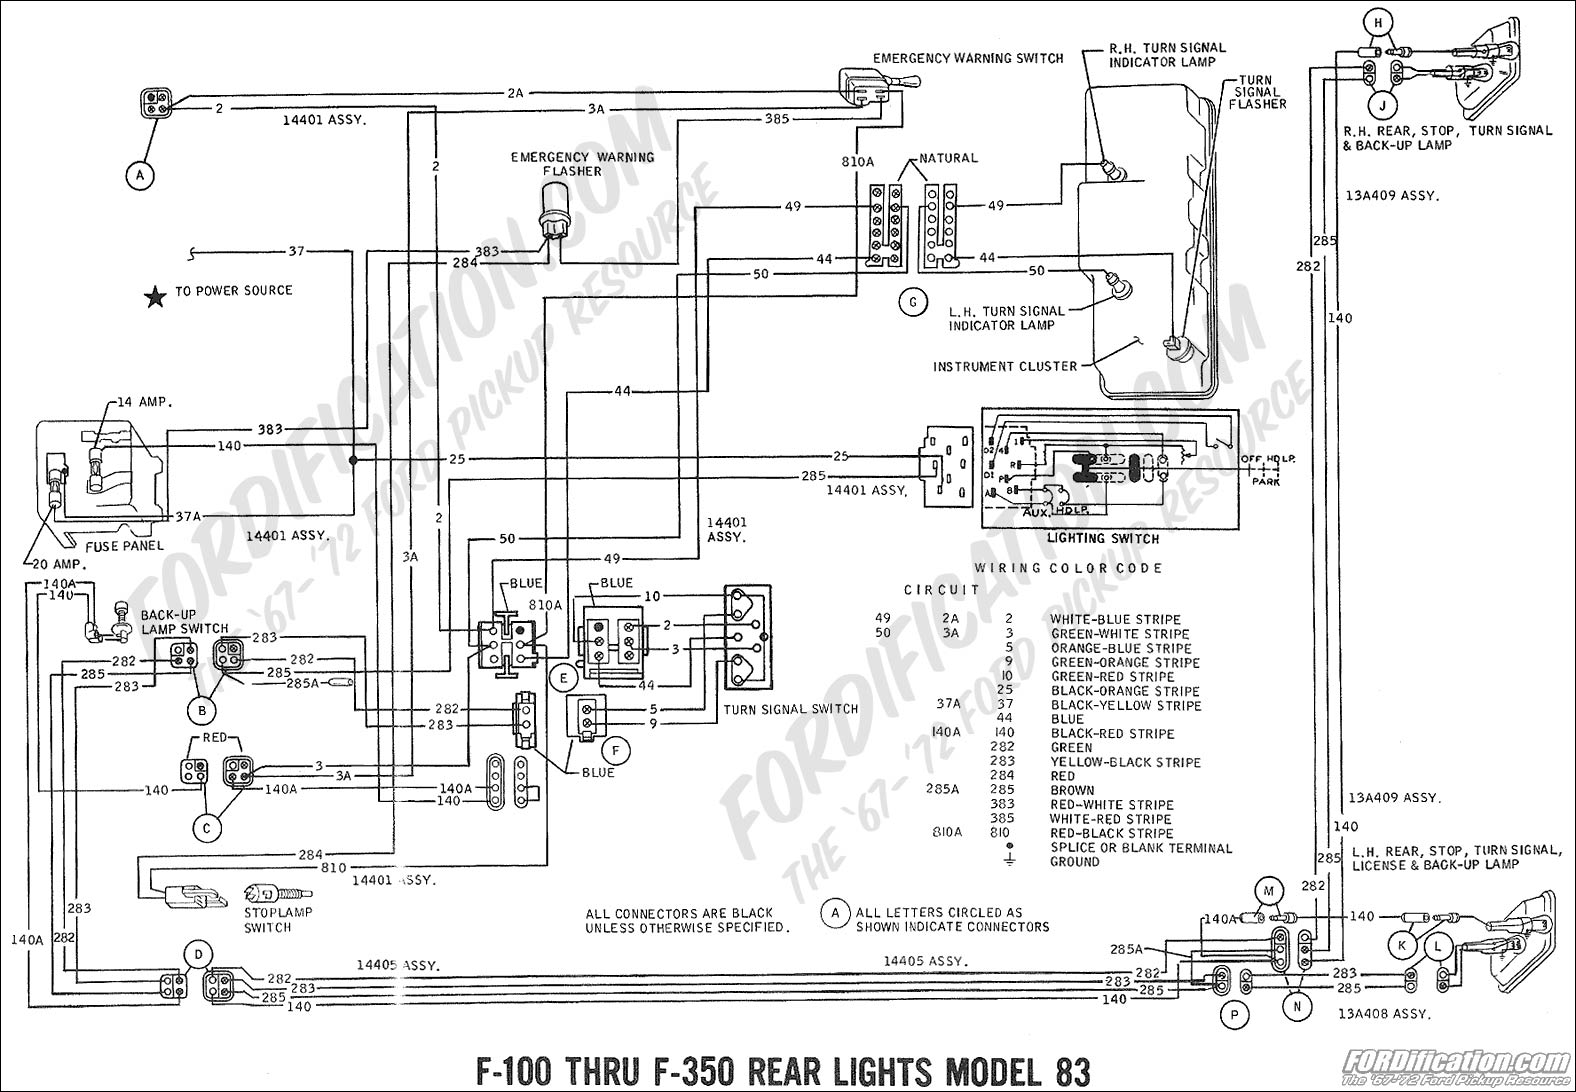 83 F250 Wiring Diagram - Manual Guide Wiring Diagram •  Ford F Pin Wiring Diagram on 2005 ford f350 wiring diagram, 1990 ford f 250 wiring diagram, 2000 ford f350 trailer wiring diagram, ford 7 way trailer wiring diagram, ford trailer wire diagram, ford f-150 wiring harness diagram, ford super duty wiring diagram, ford f-150 trailer wiring diagram, ford 7 pronge wiring-diagram, 7 pin rv connector diagram,